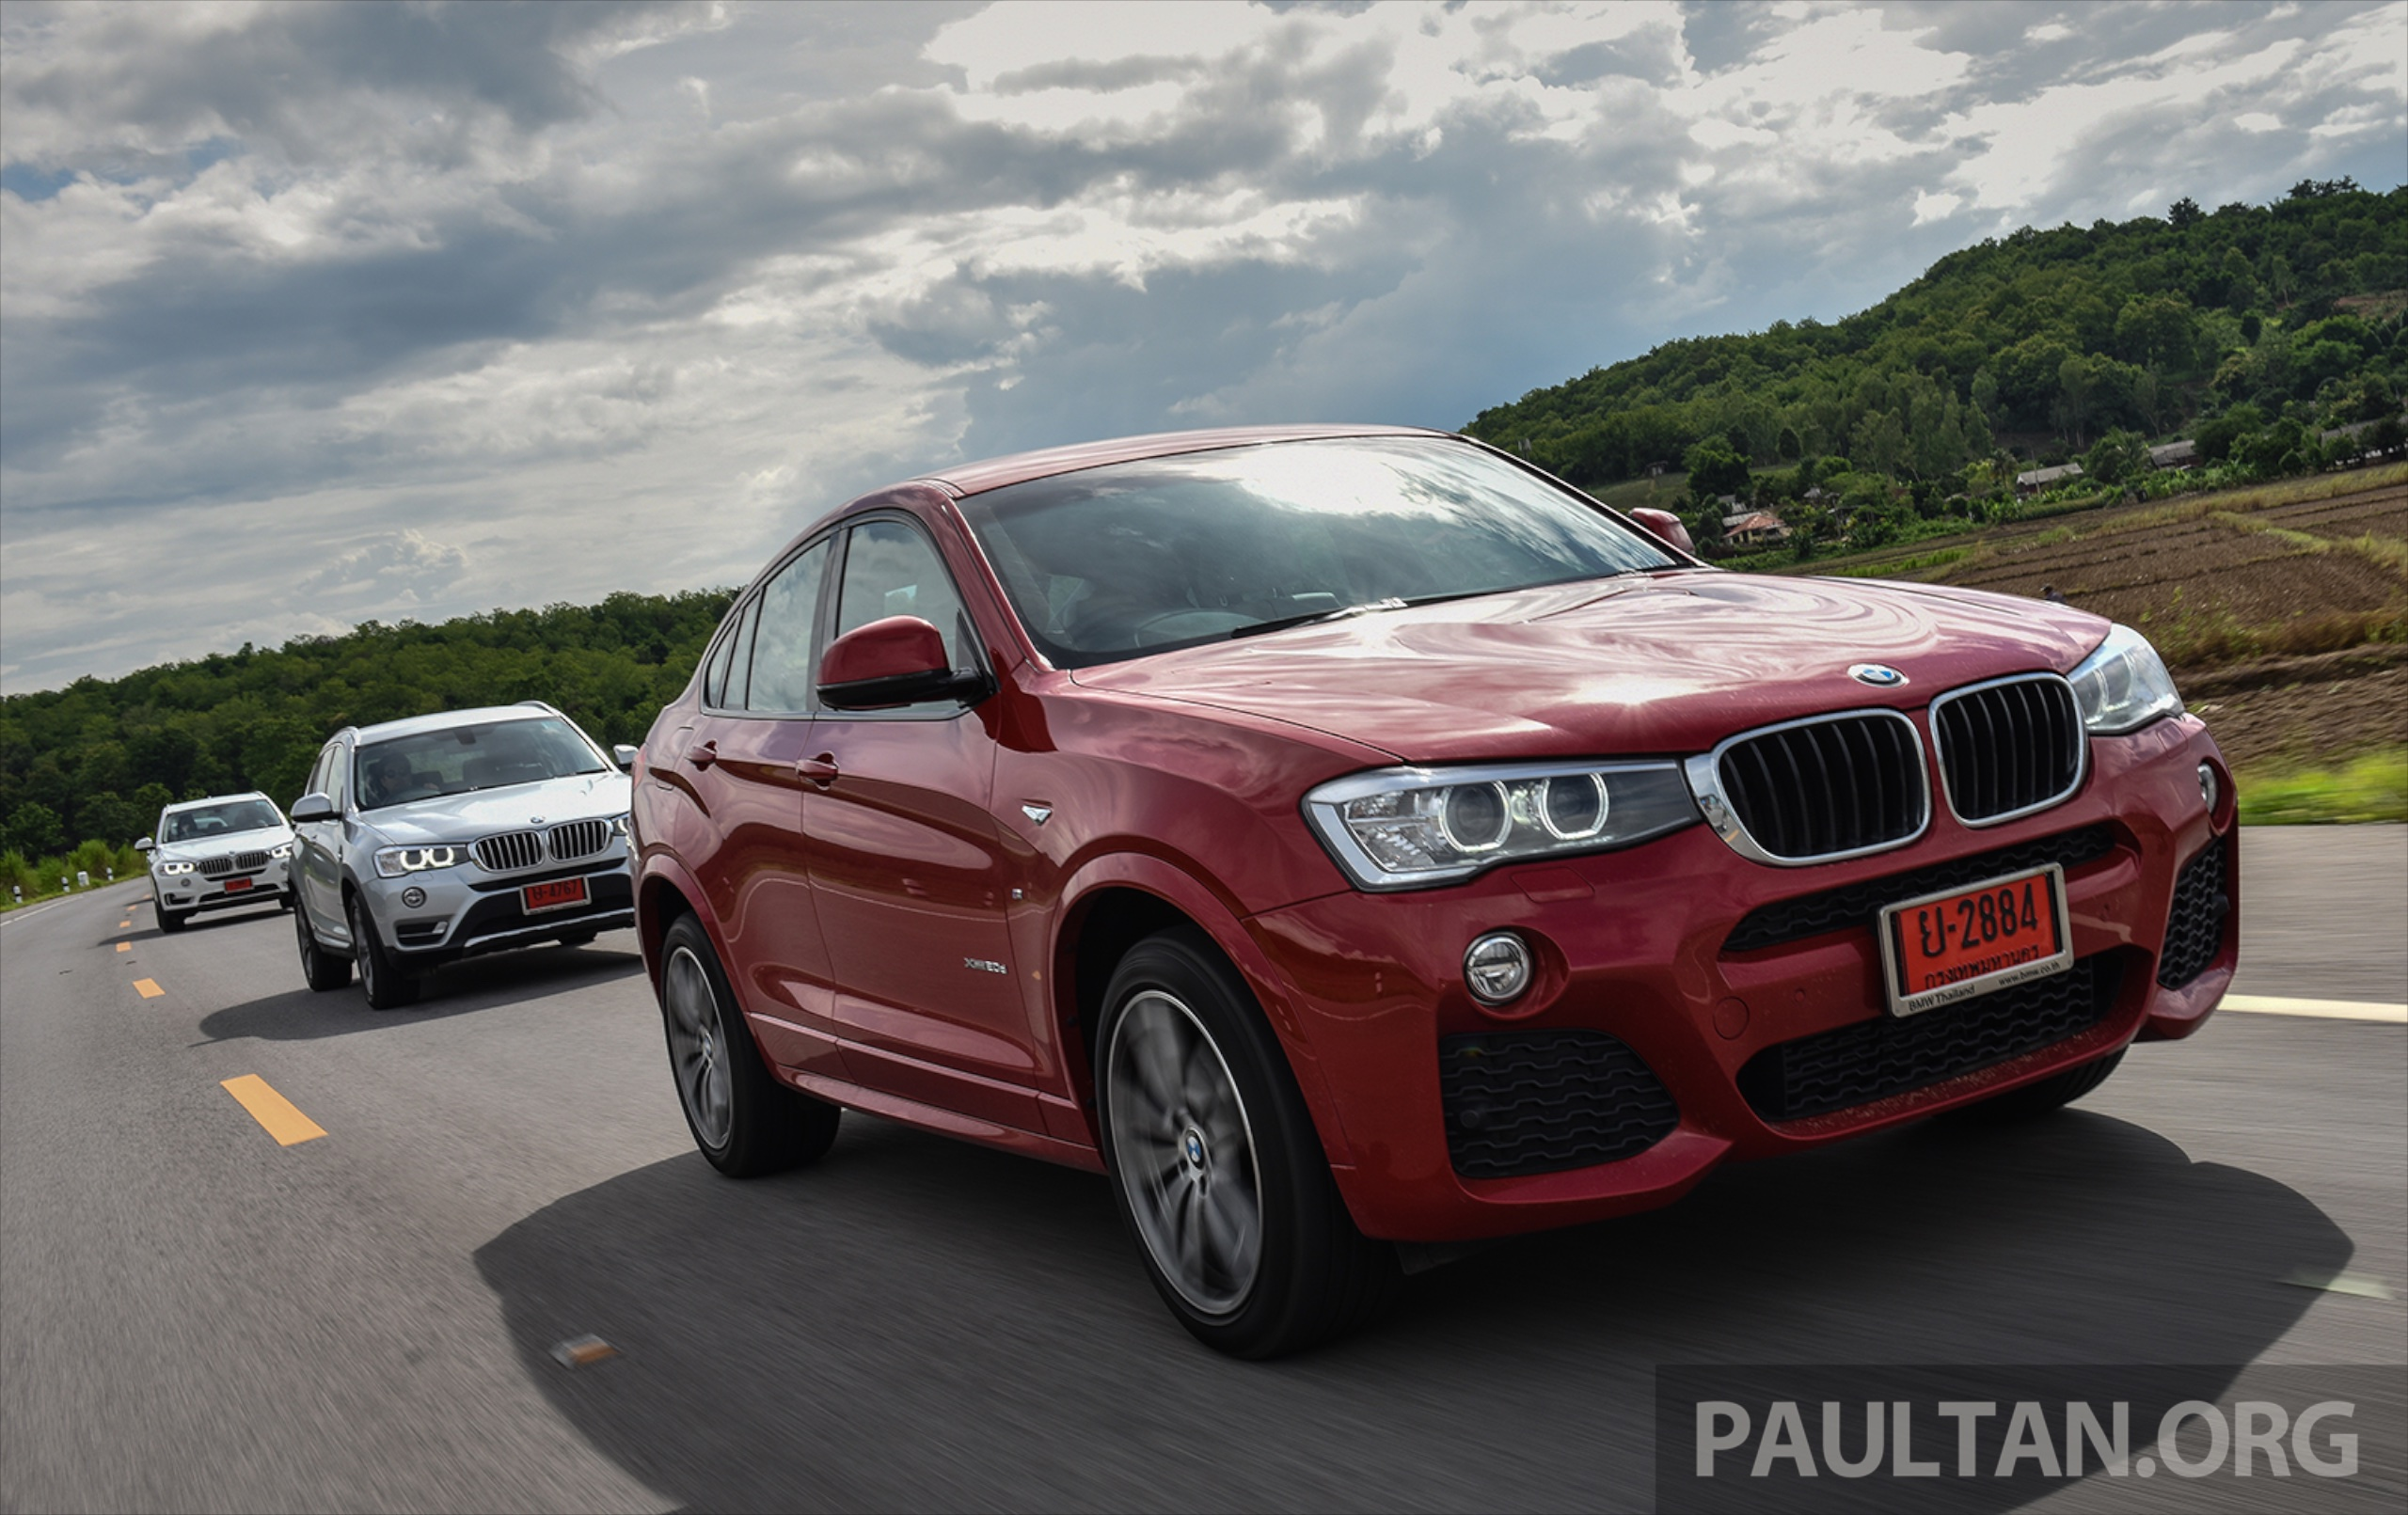 Driven Bmw X Models Revisited X3 X4 X5 And X6 Paul